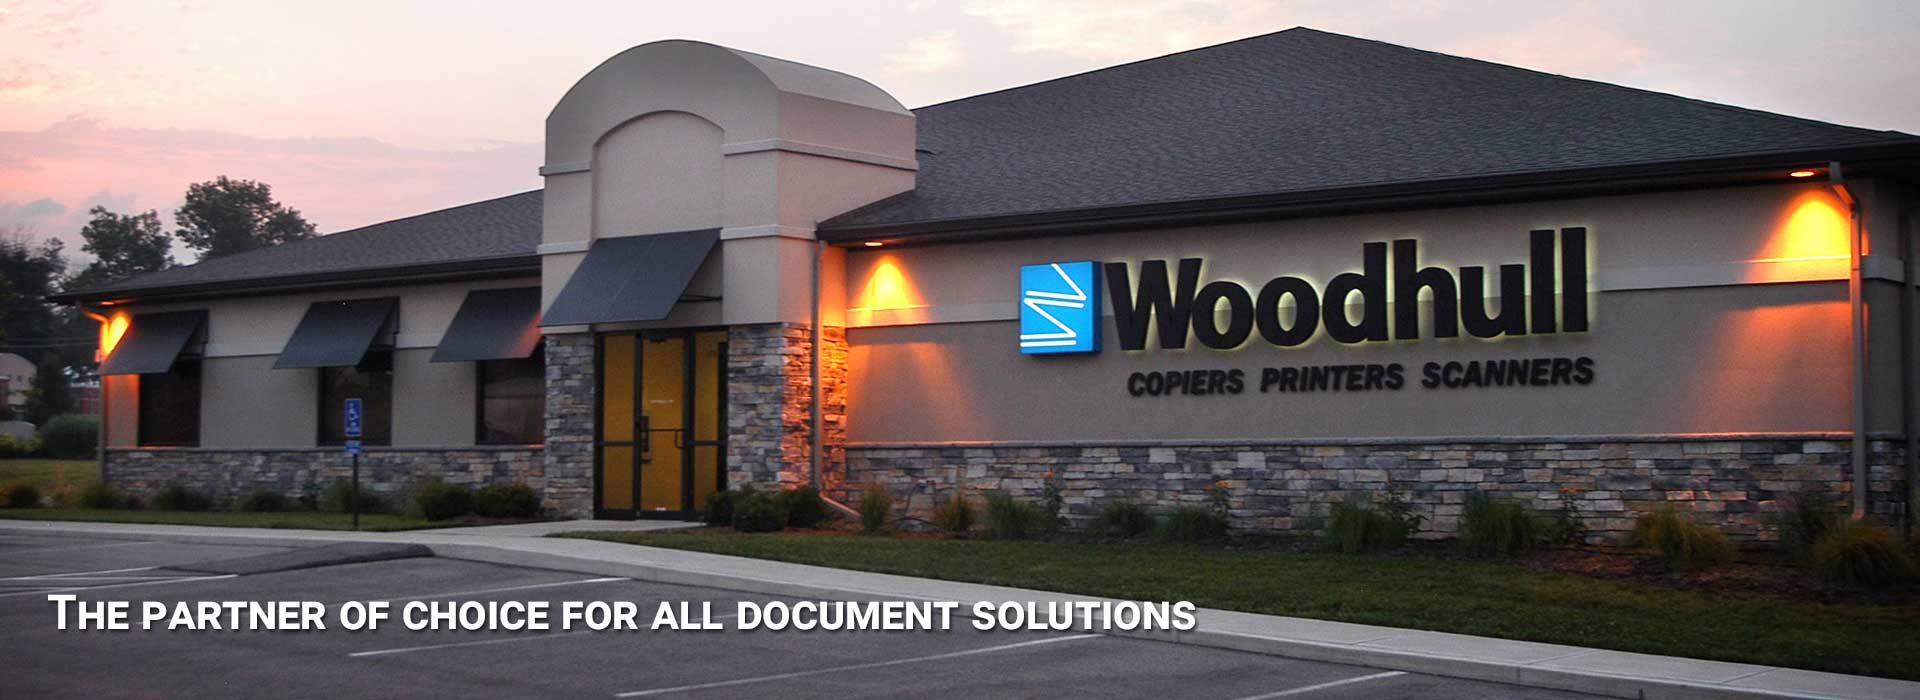 The partner of choice for all document solutions